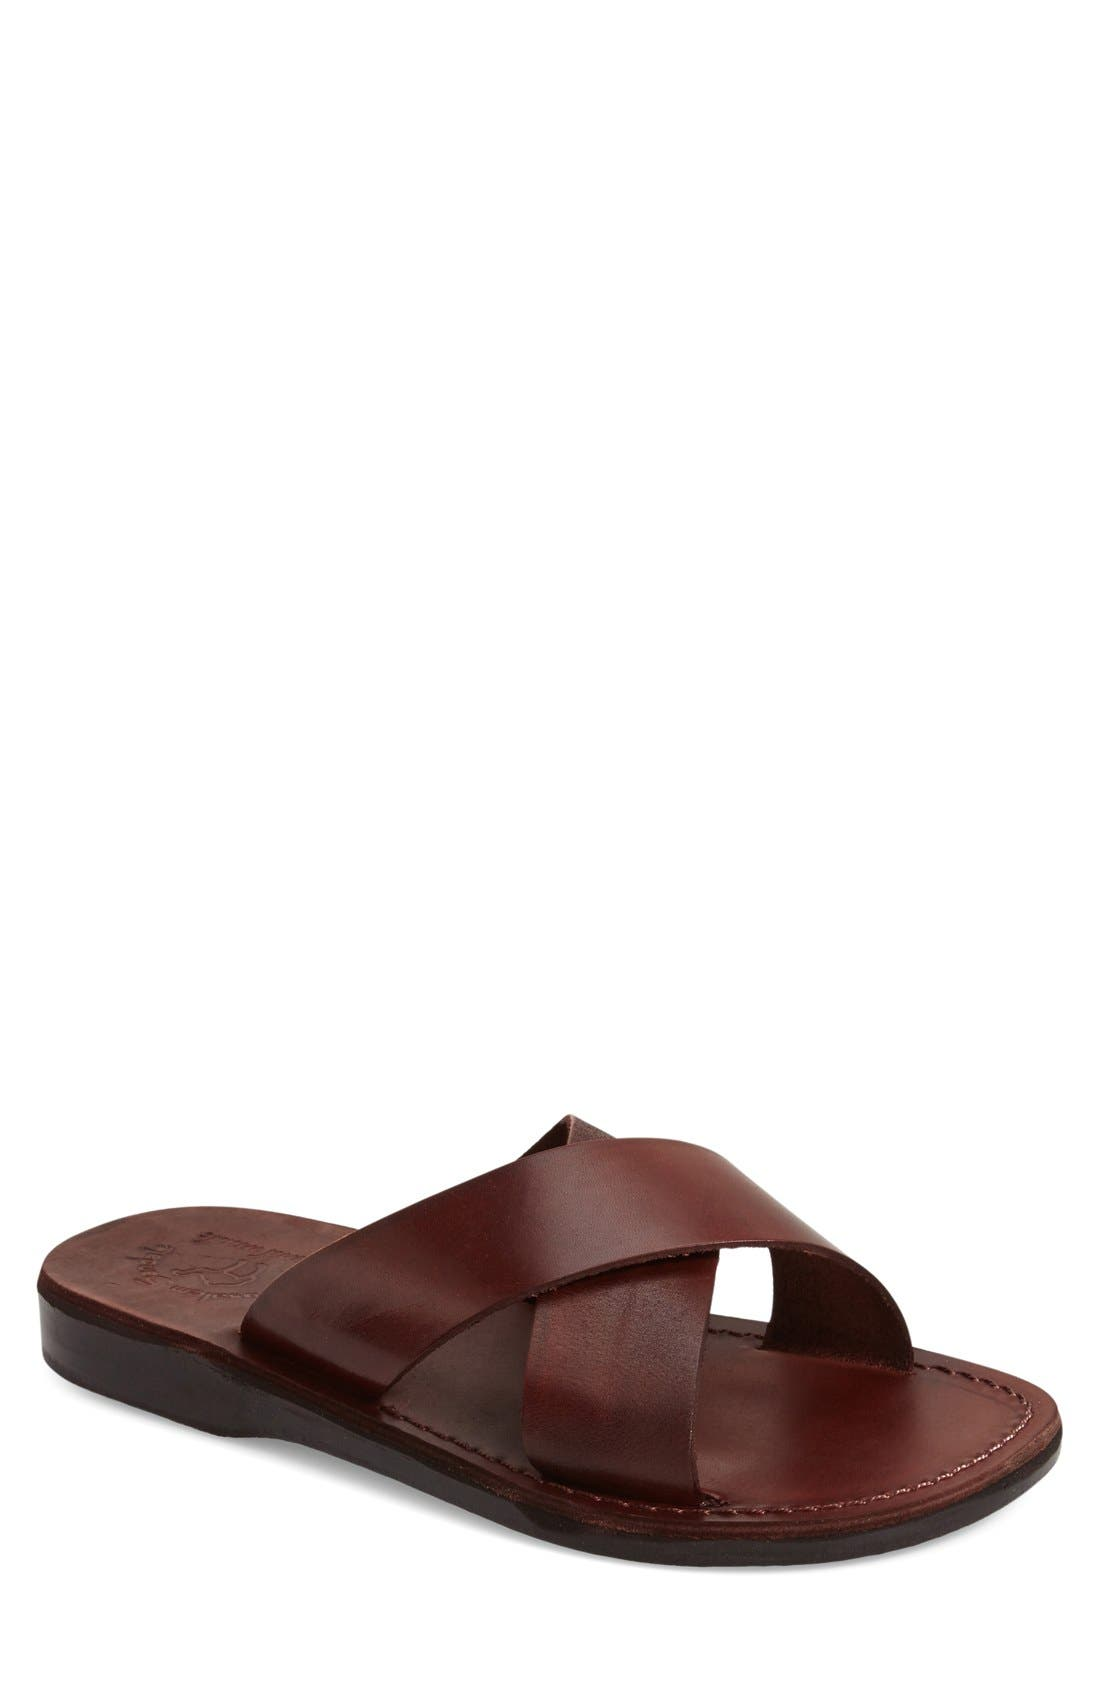 JERUSALEM SANDALS, 'Elan' Slide Sandal, Main thumbnail 1, color, BROWN LEATHER